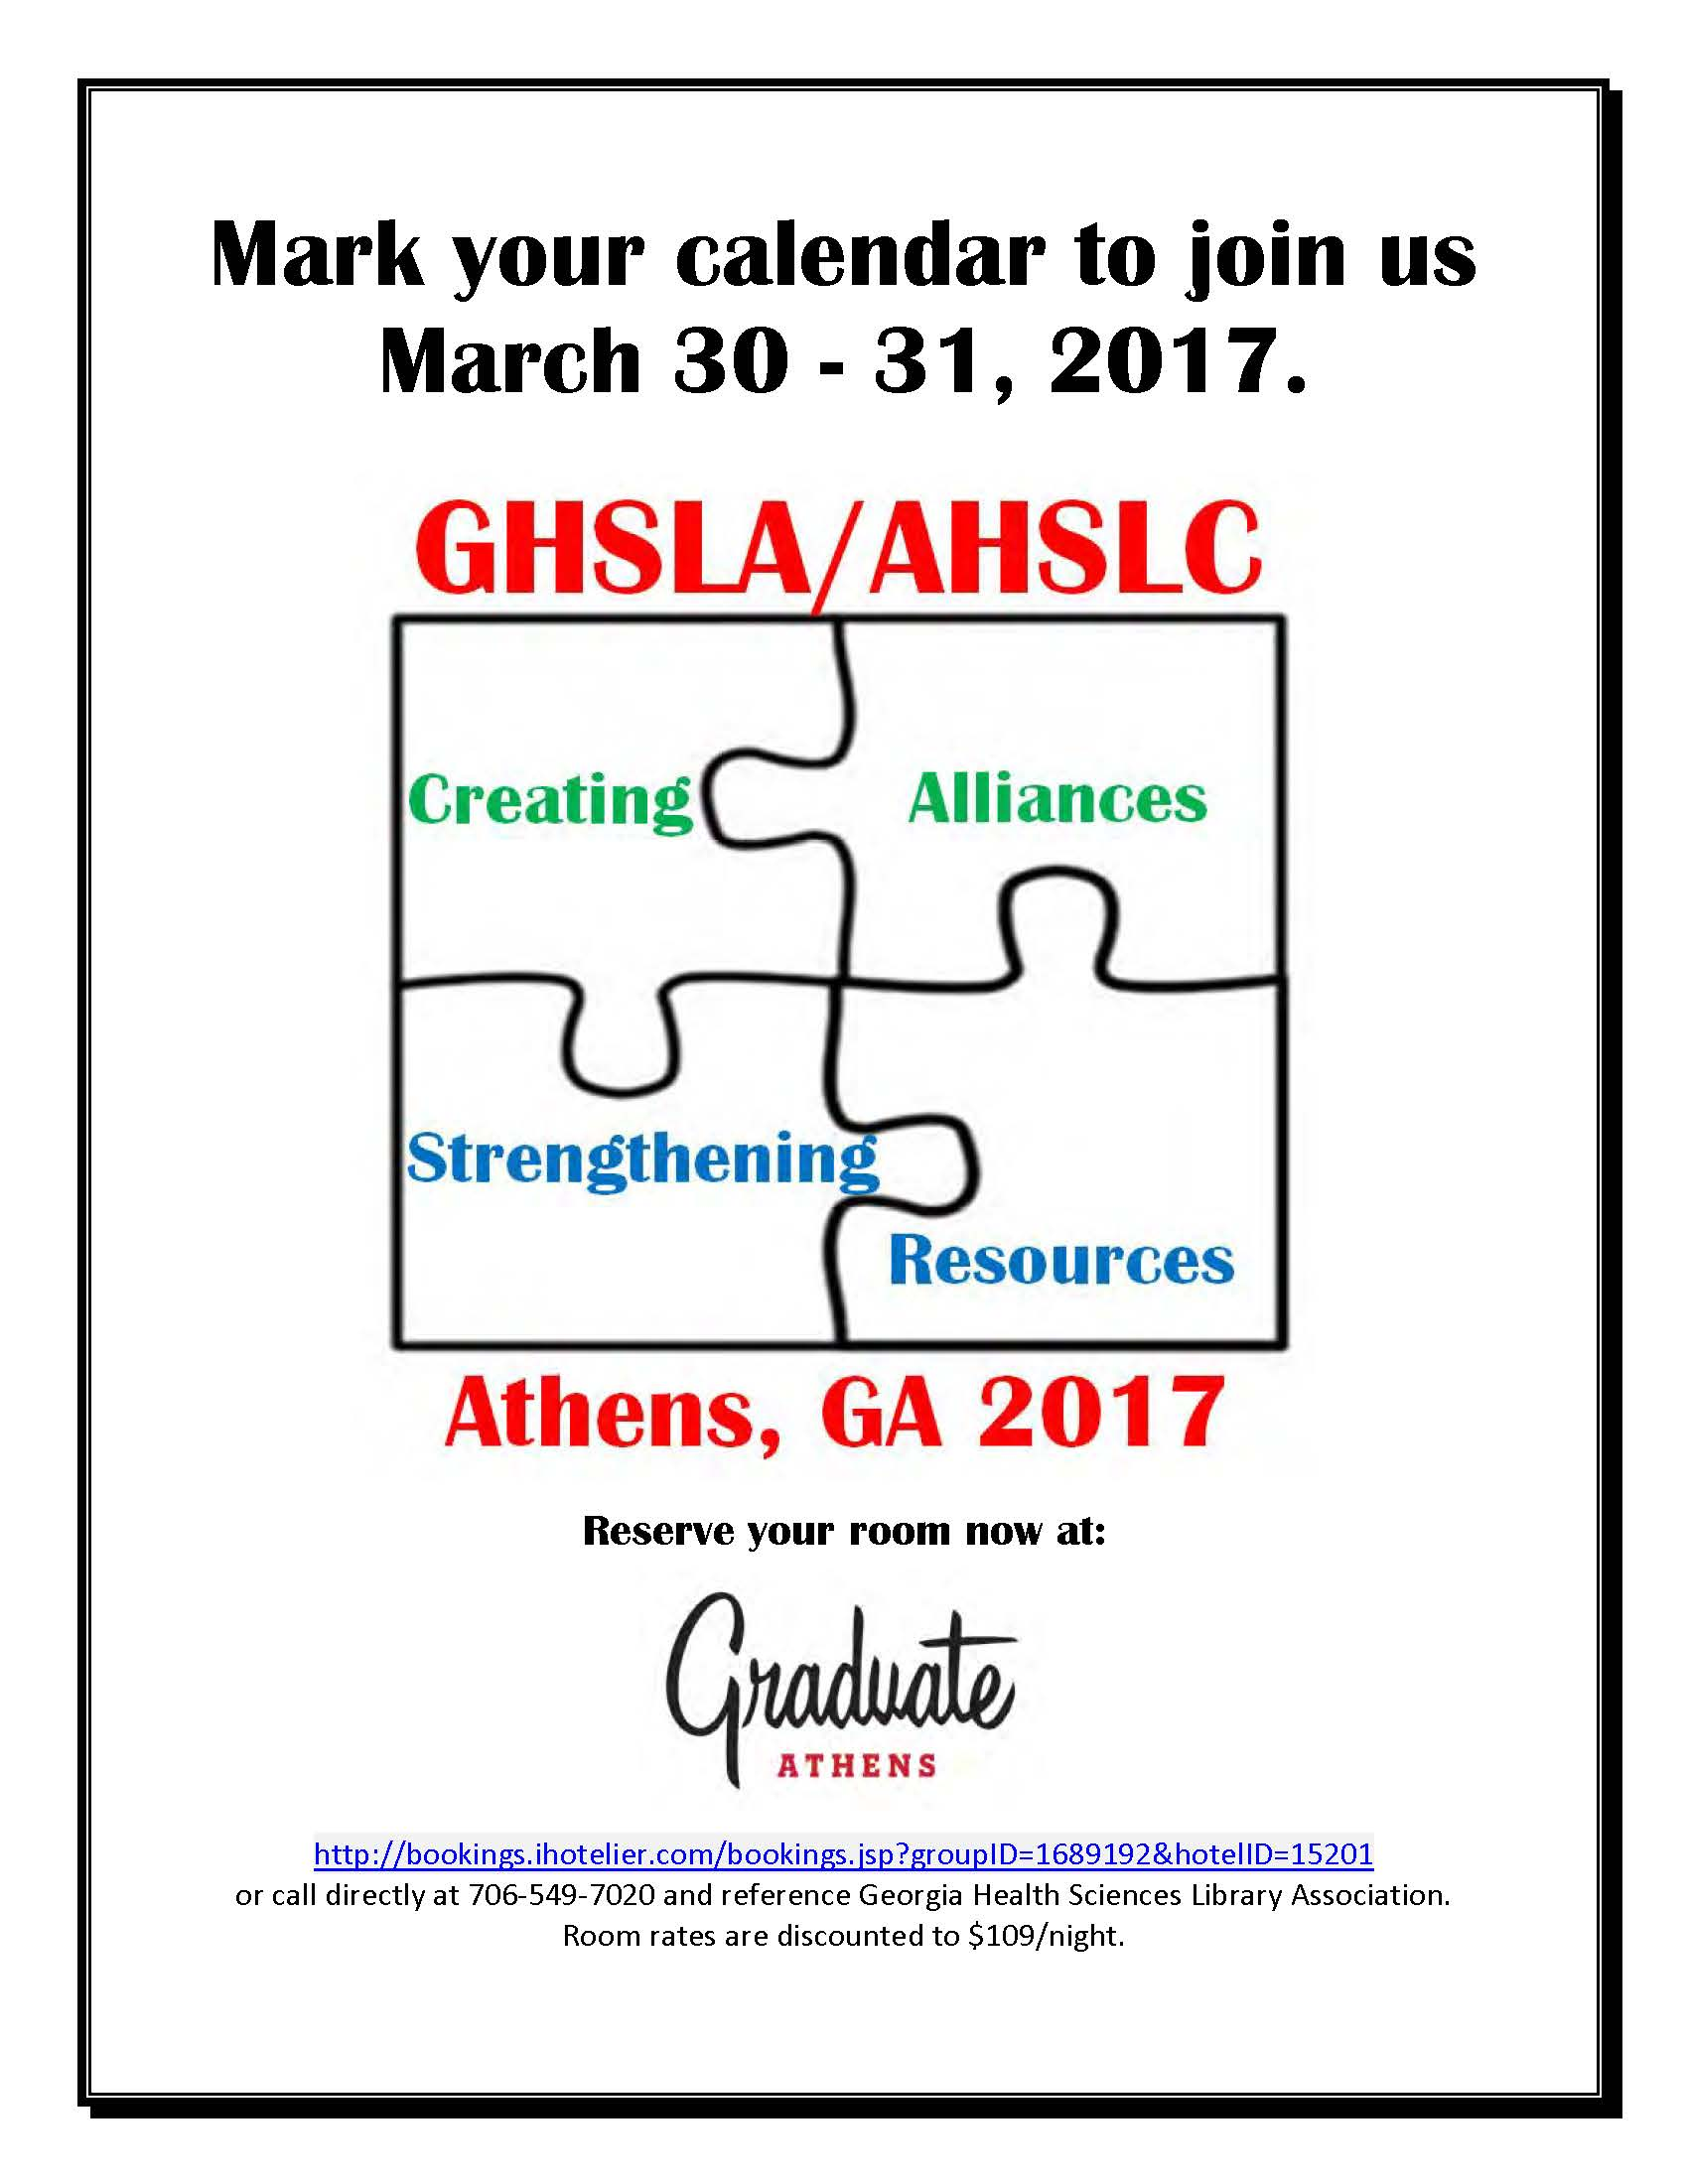 save-the-date-ghsla-ahslc-2017